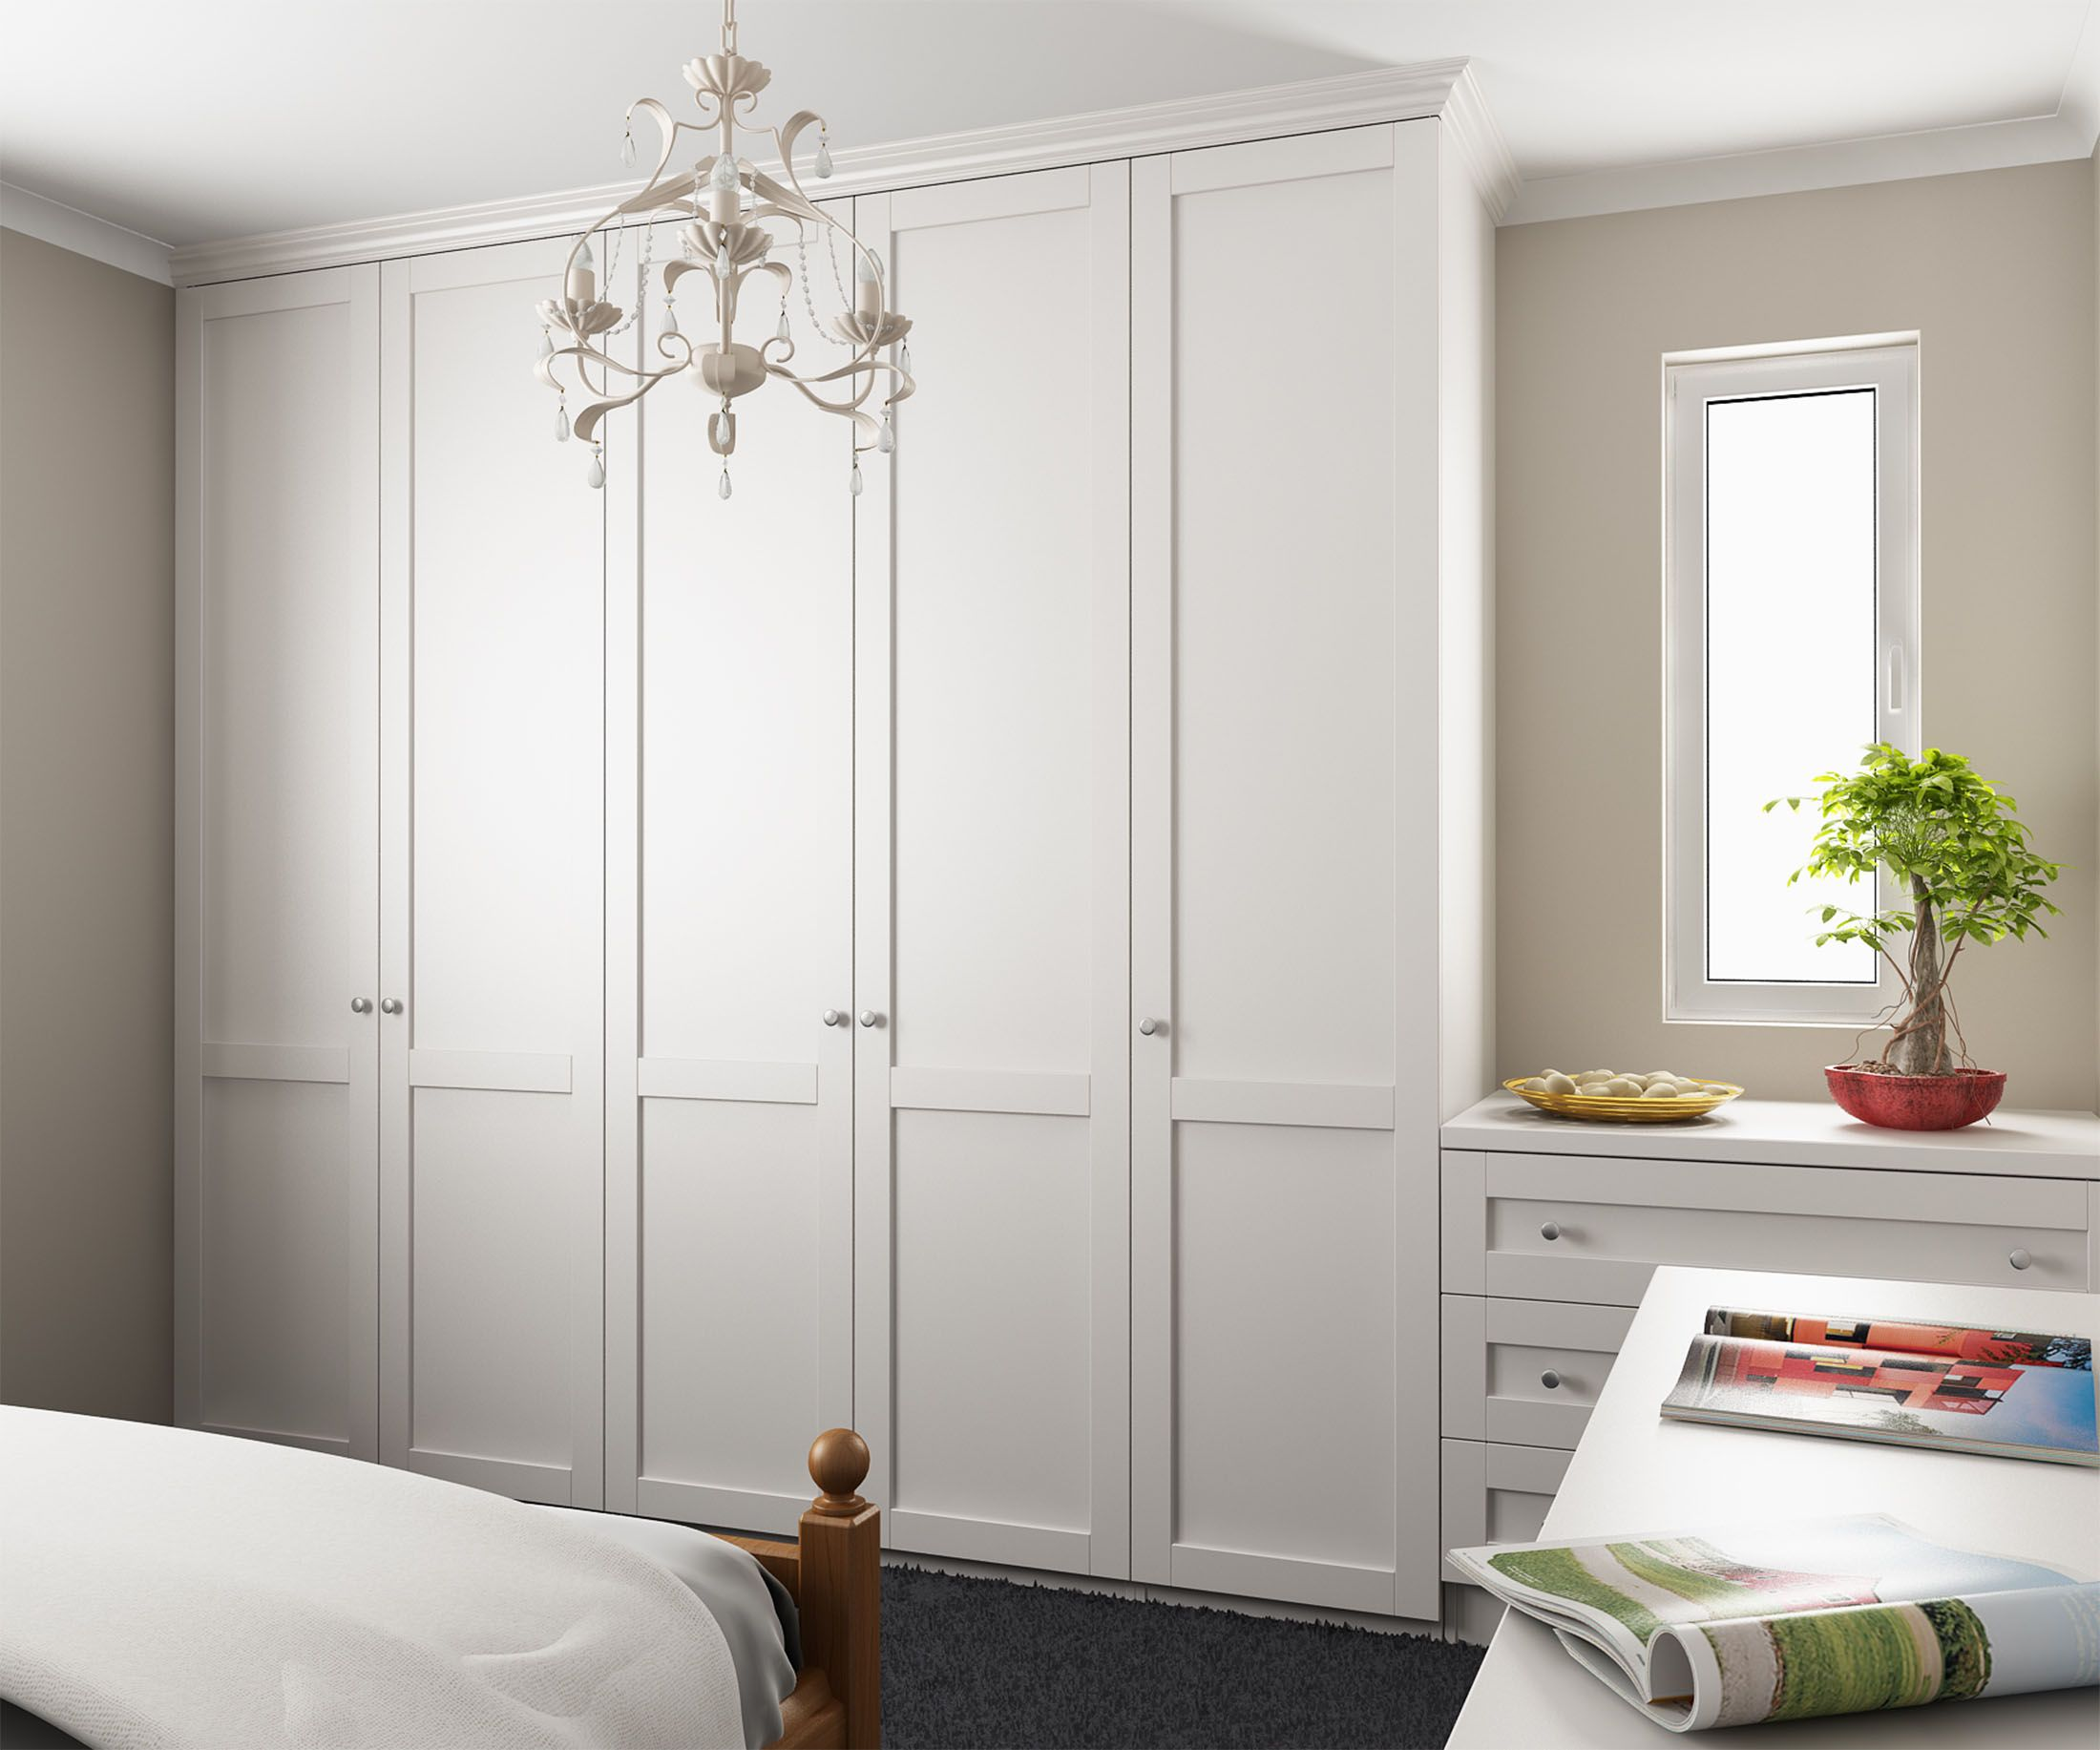 Suit and evening dress kept in style: Hinged-door wardrobes pine painted white